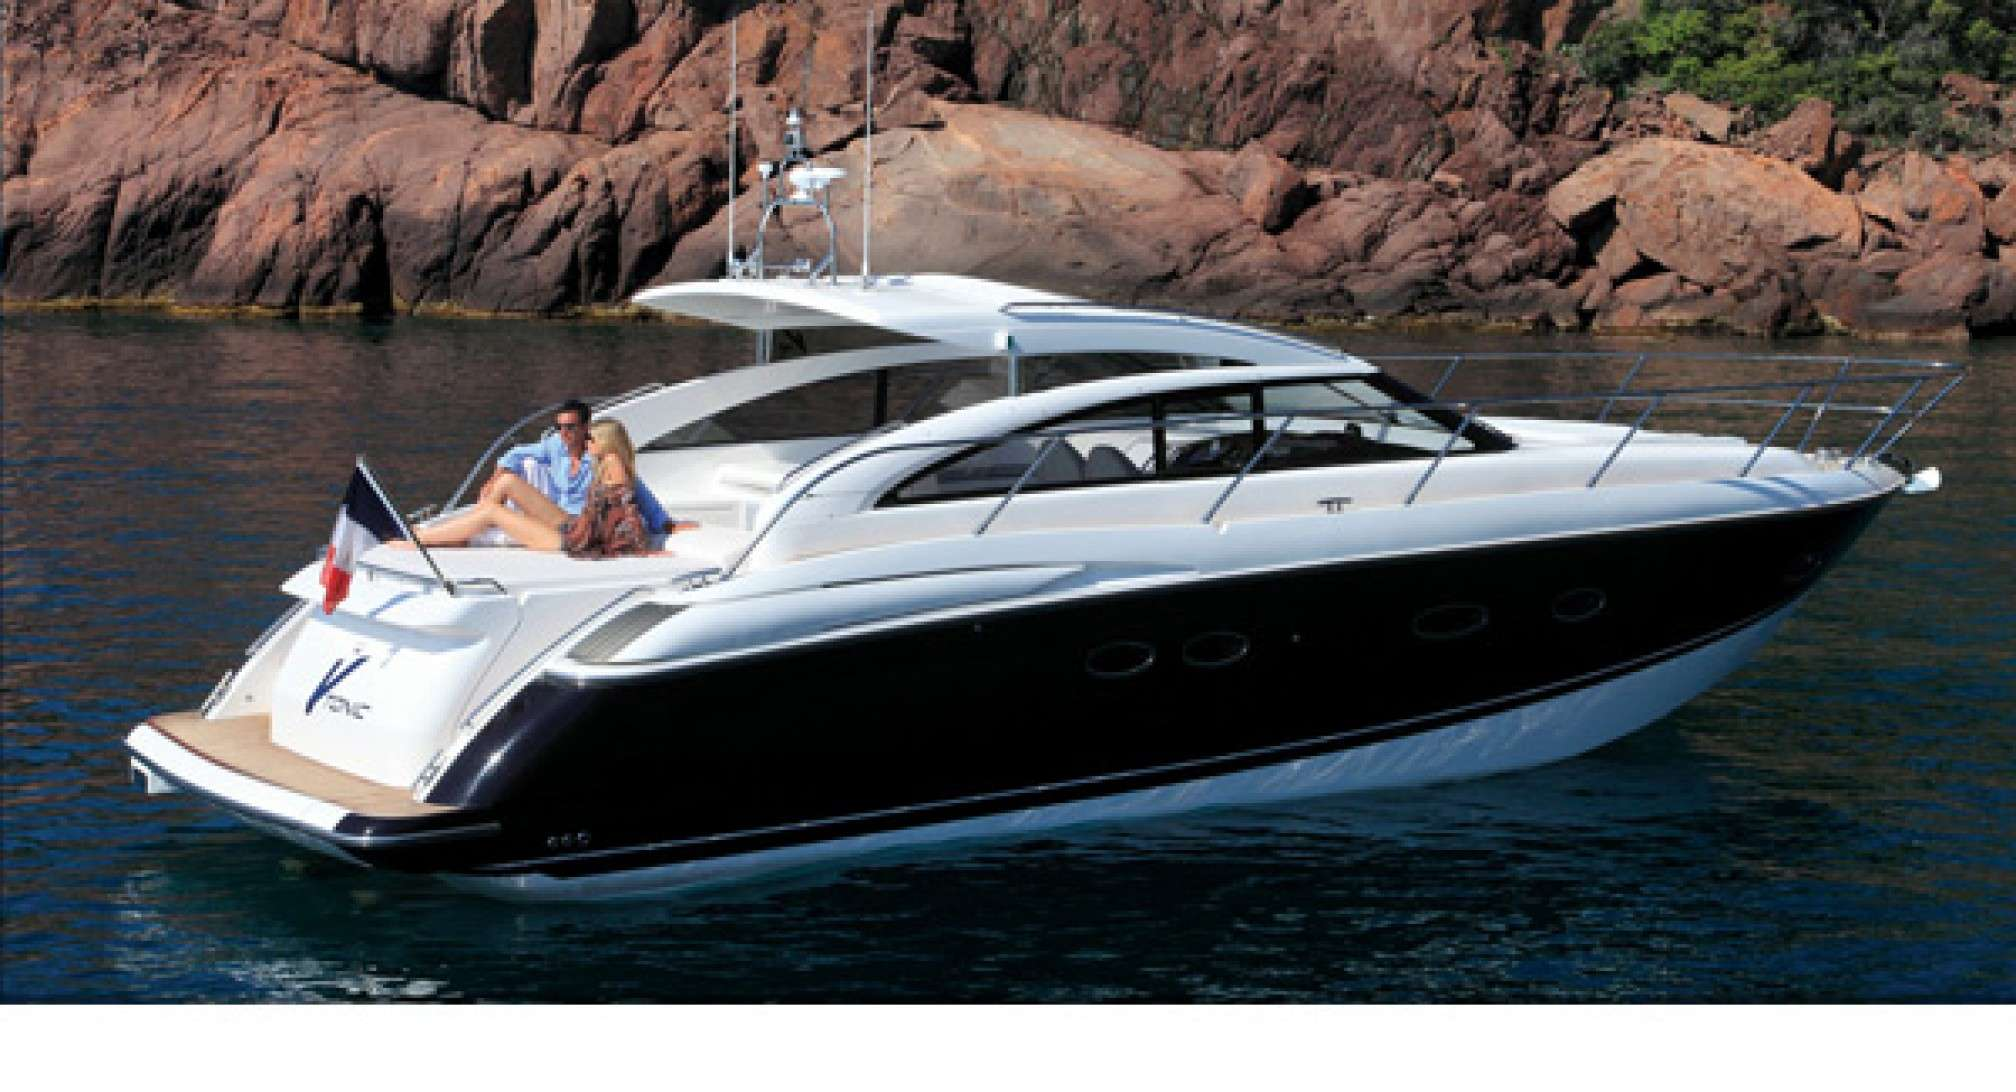 Princess V42 yacht charter anchored